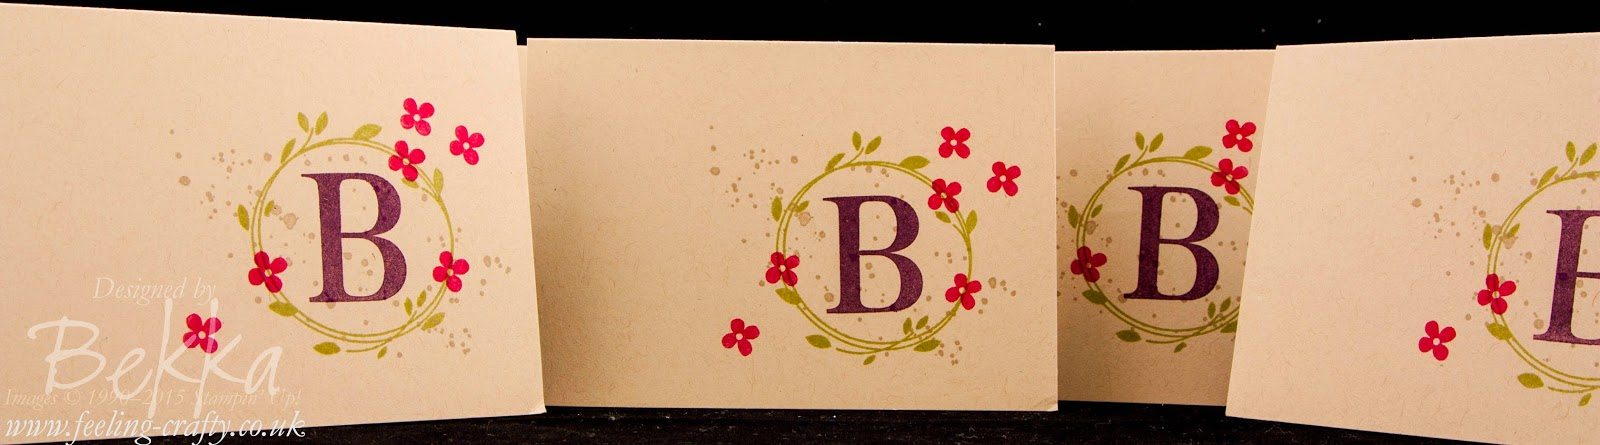 Make Your Own Monogram Note Cards Using Stampin' Up! UK Stamps.  Get them here